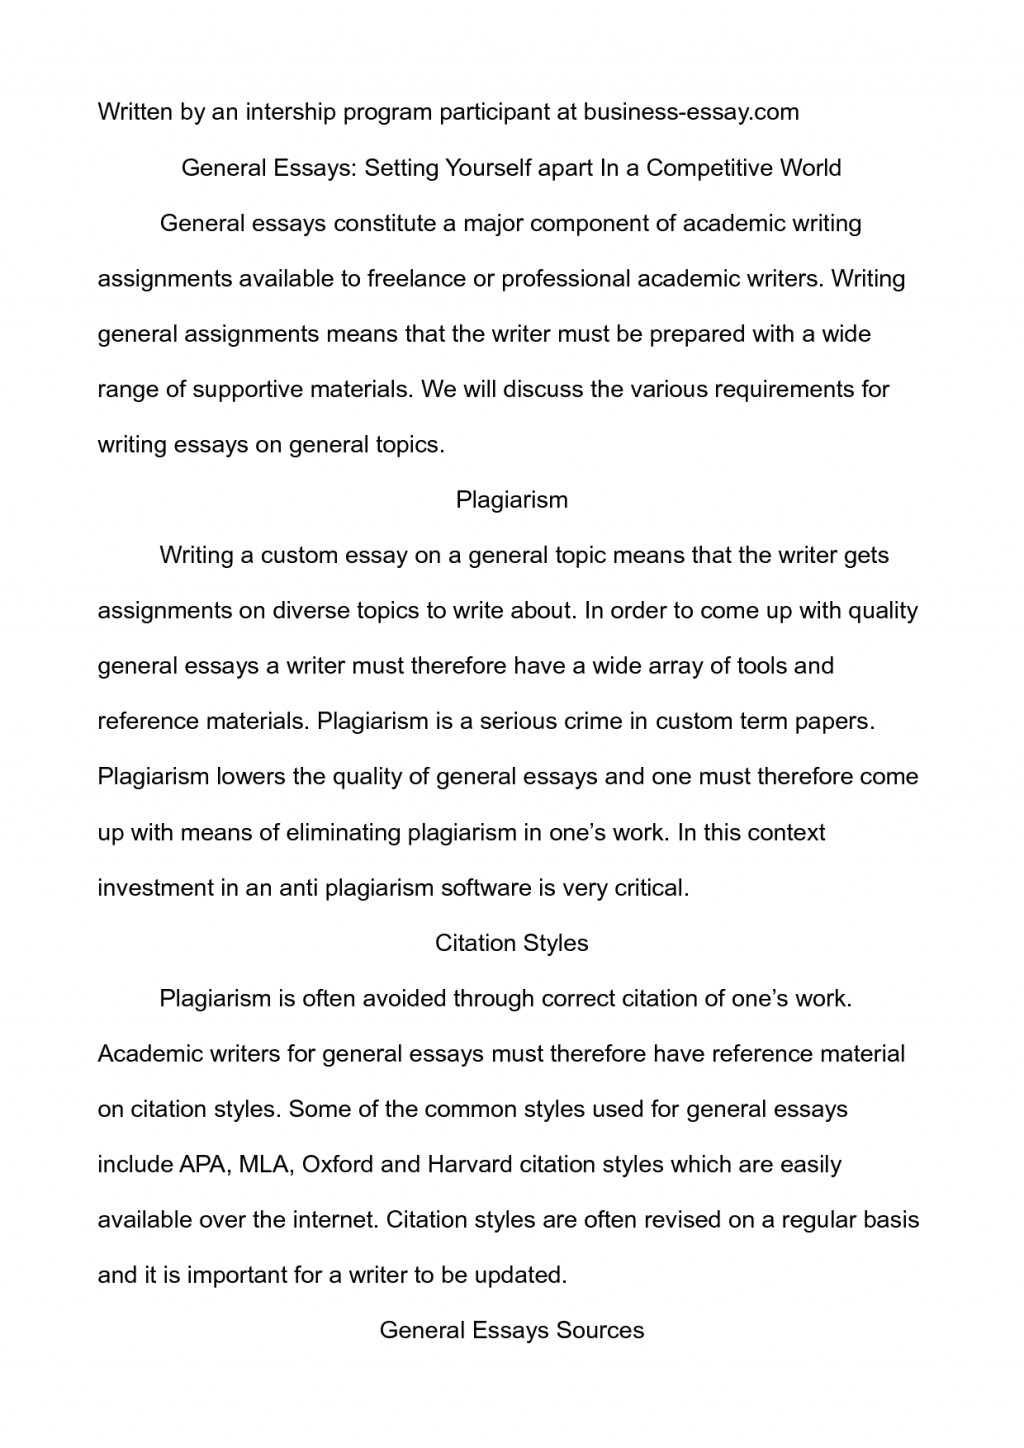 016 Essay Example Pretty Describe Myself Sample Spm Template Fearsome About On In French With English Translation Introduction Large